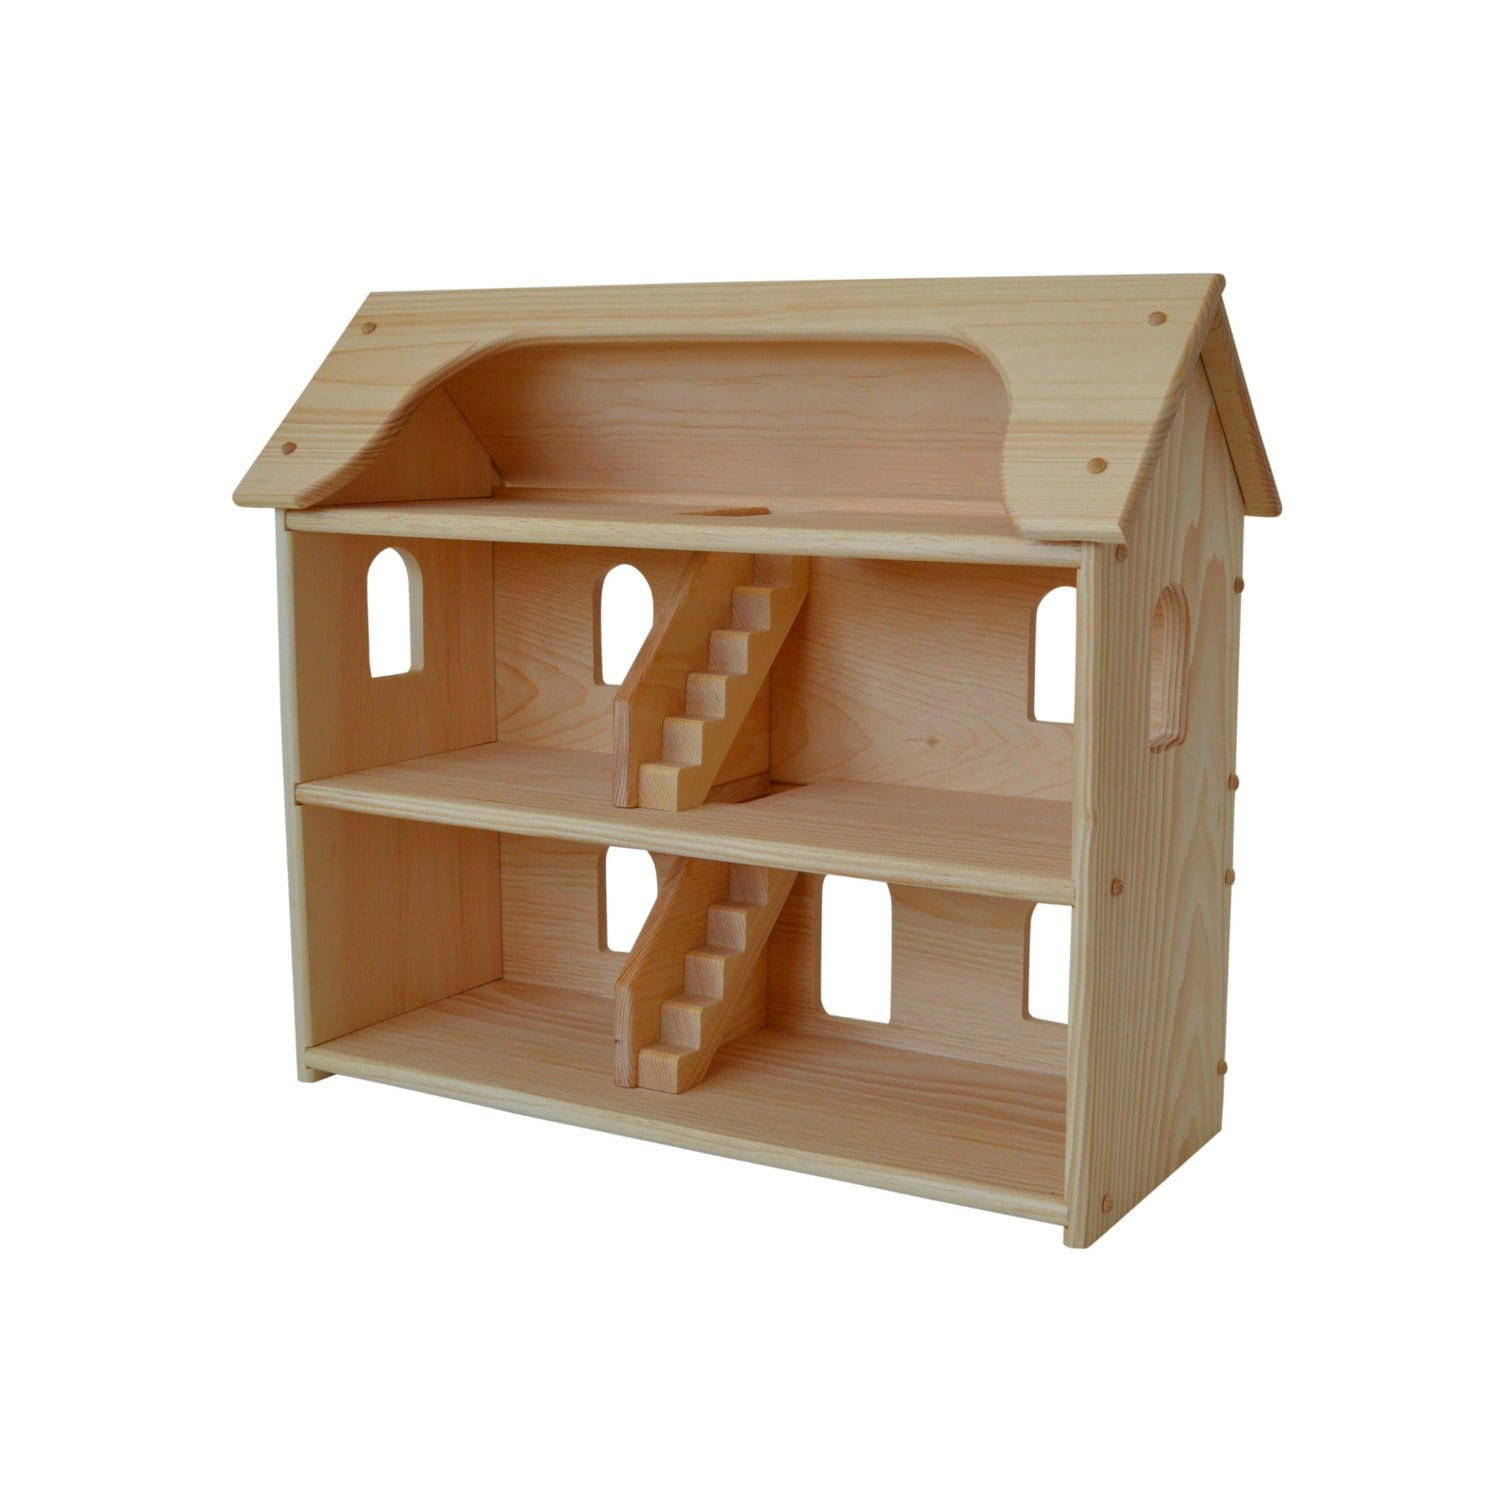 Wooden Doll House 28 Images Wooden Doll House With 7 Wood Dollhouse Furniture Wooden Doll